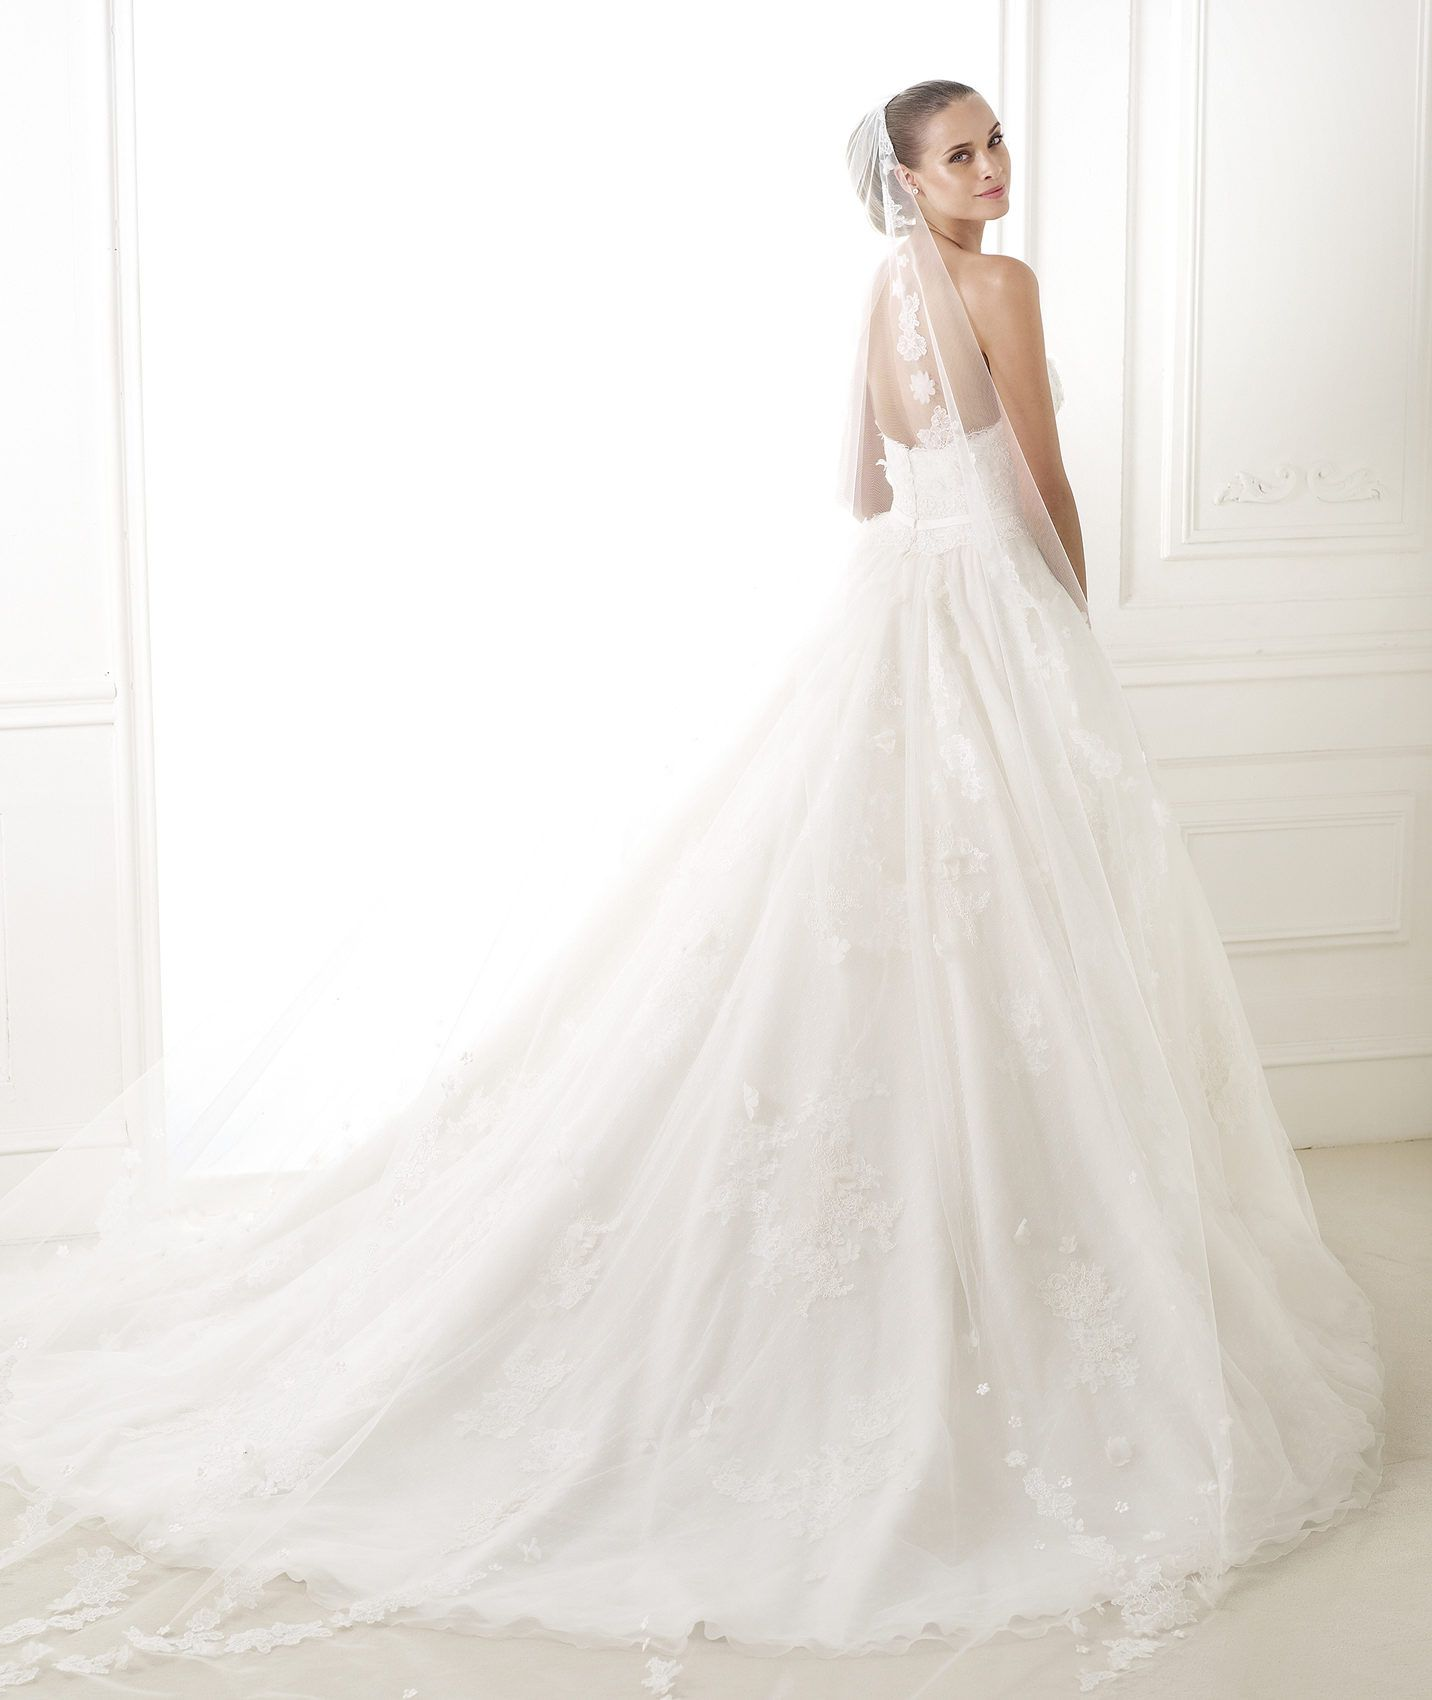 Princesa Vestido Corte De Pronovias 2015Wedding Espectacular MUzpSGqV